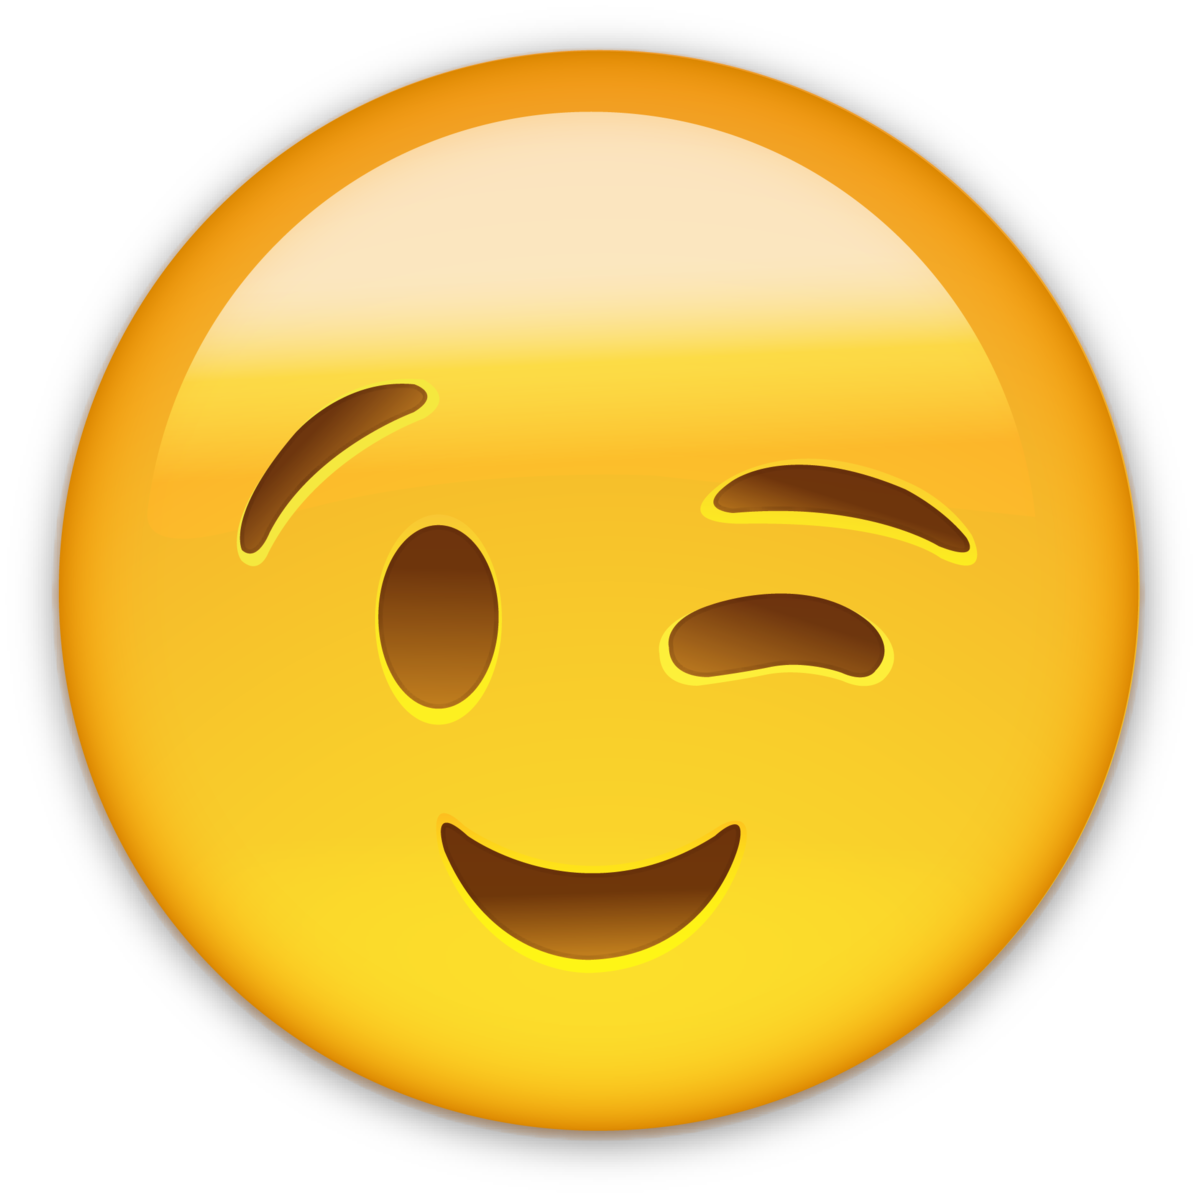 Download Emoticon Smiley Wink Smile Whatsapp Emoji ICON ...